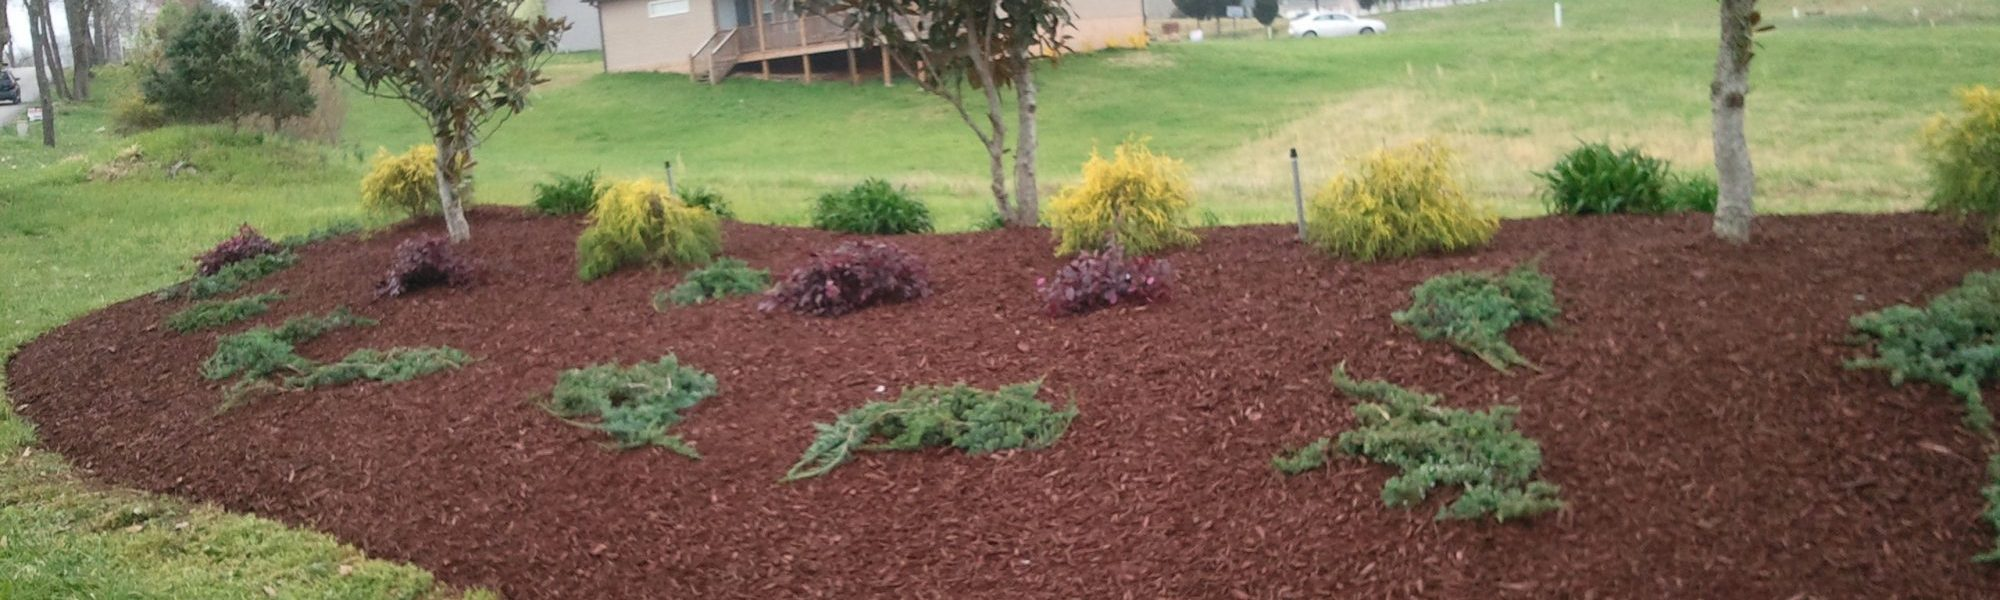 landscaping knoxville